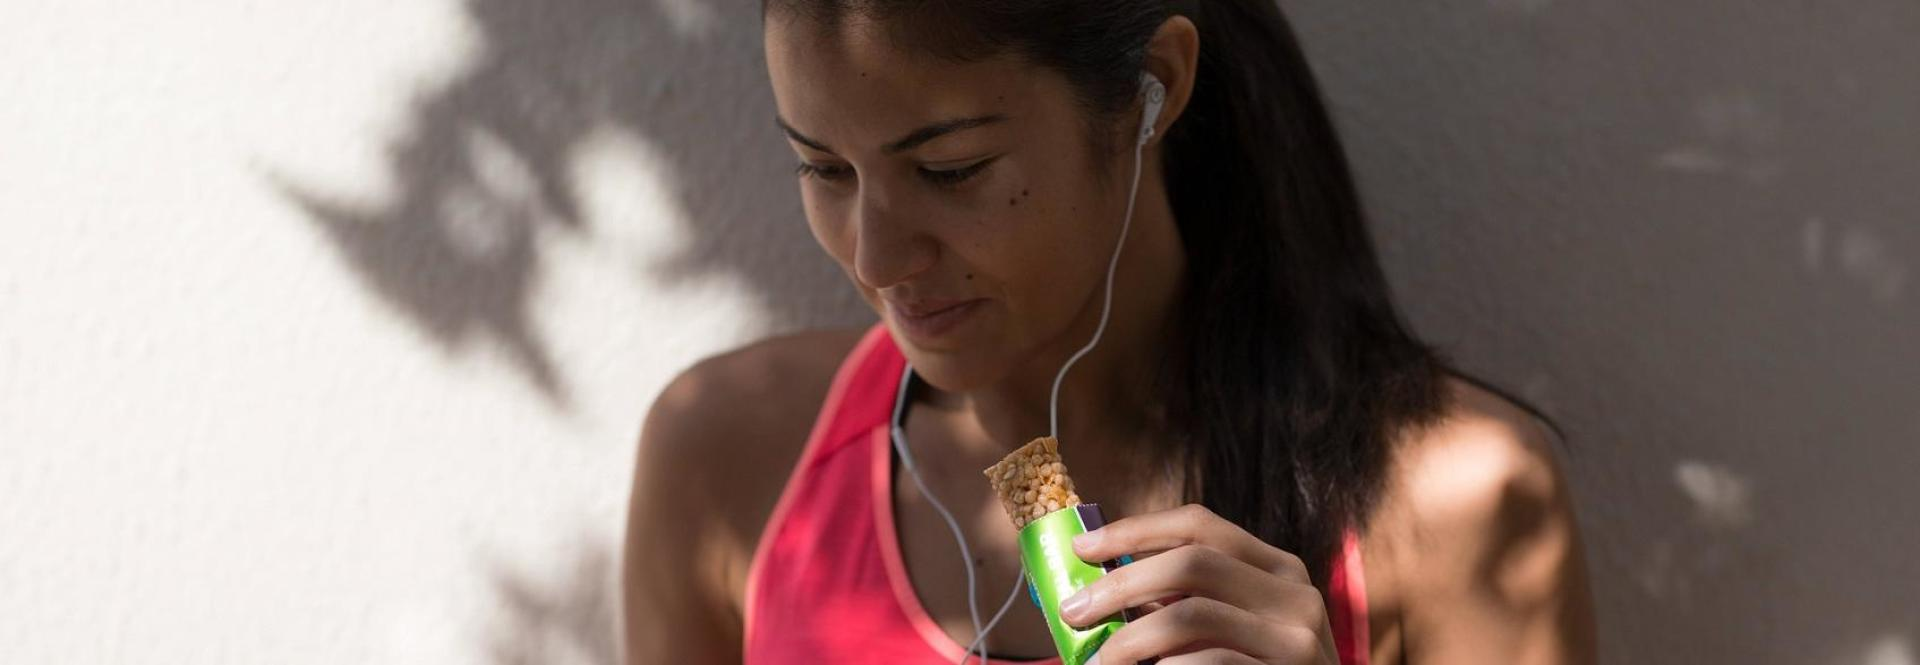 Top 10 Eating Habits For Reducing Running Injuries